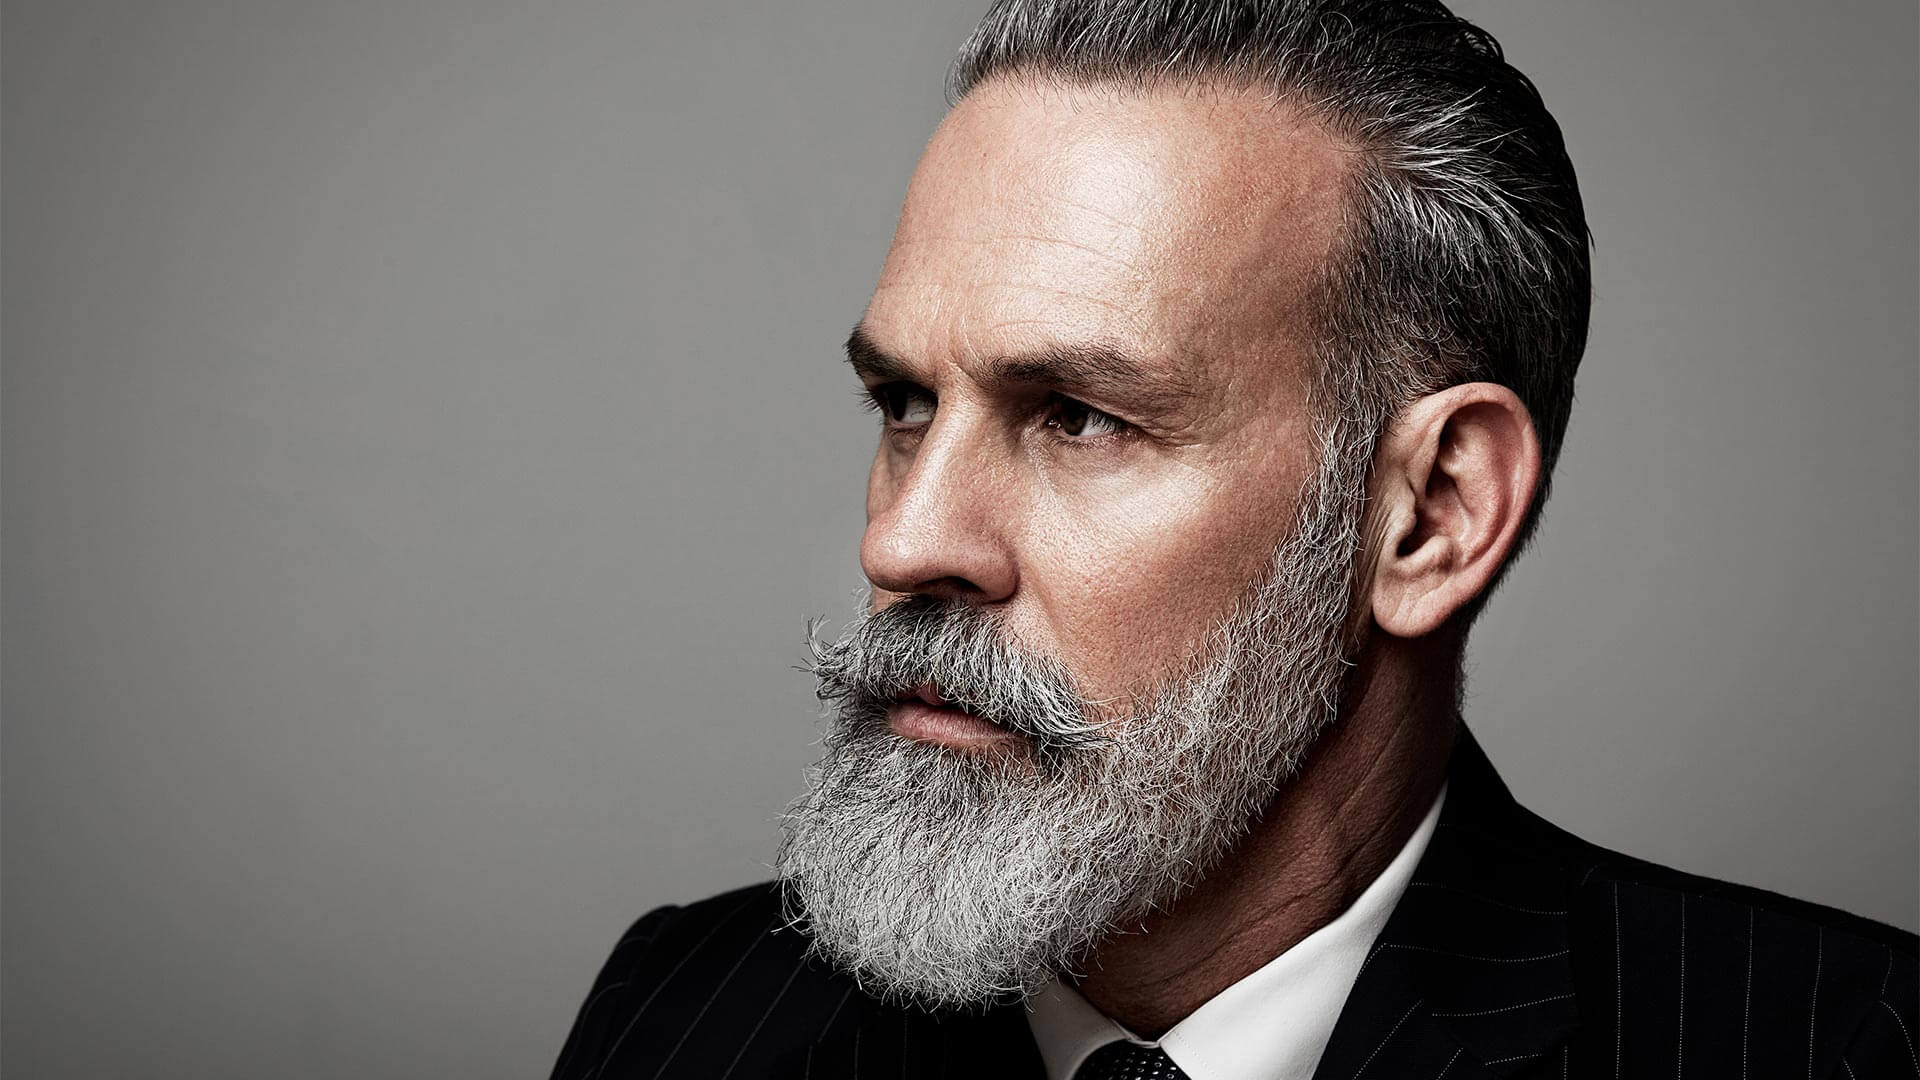 Being Beardiful Means More Than Just Having An Outstanding Neck ManeThe term Beardiful we obviously use quite often, not just because it's our name, but because we strongly felt that being Beard